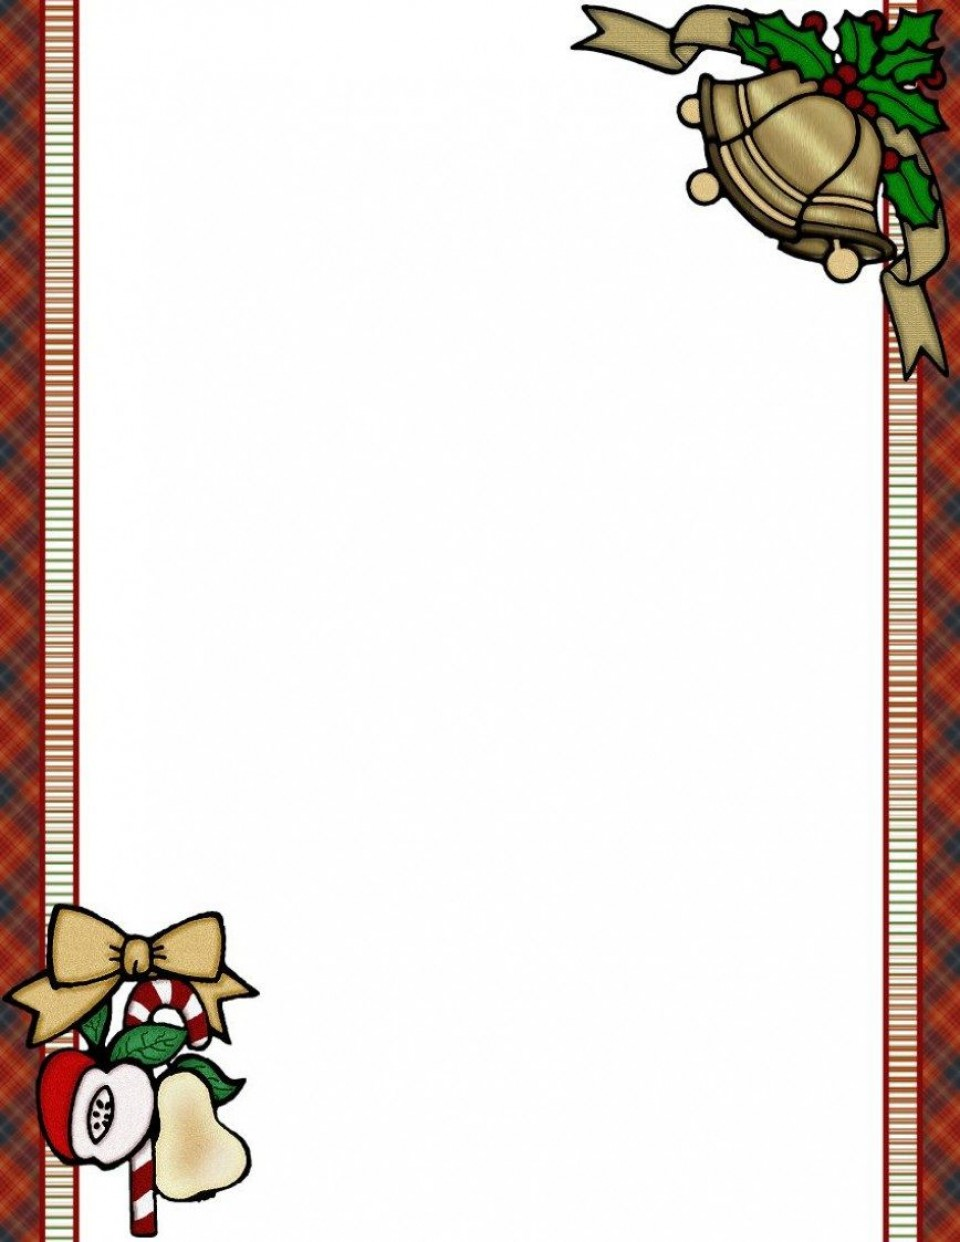 010 Wondrou Christma Stationery Template Word Free Inspiration  Religiou For Downloadable960